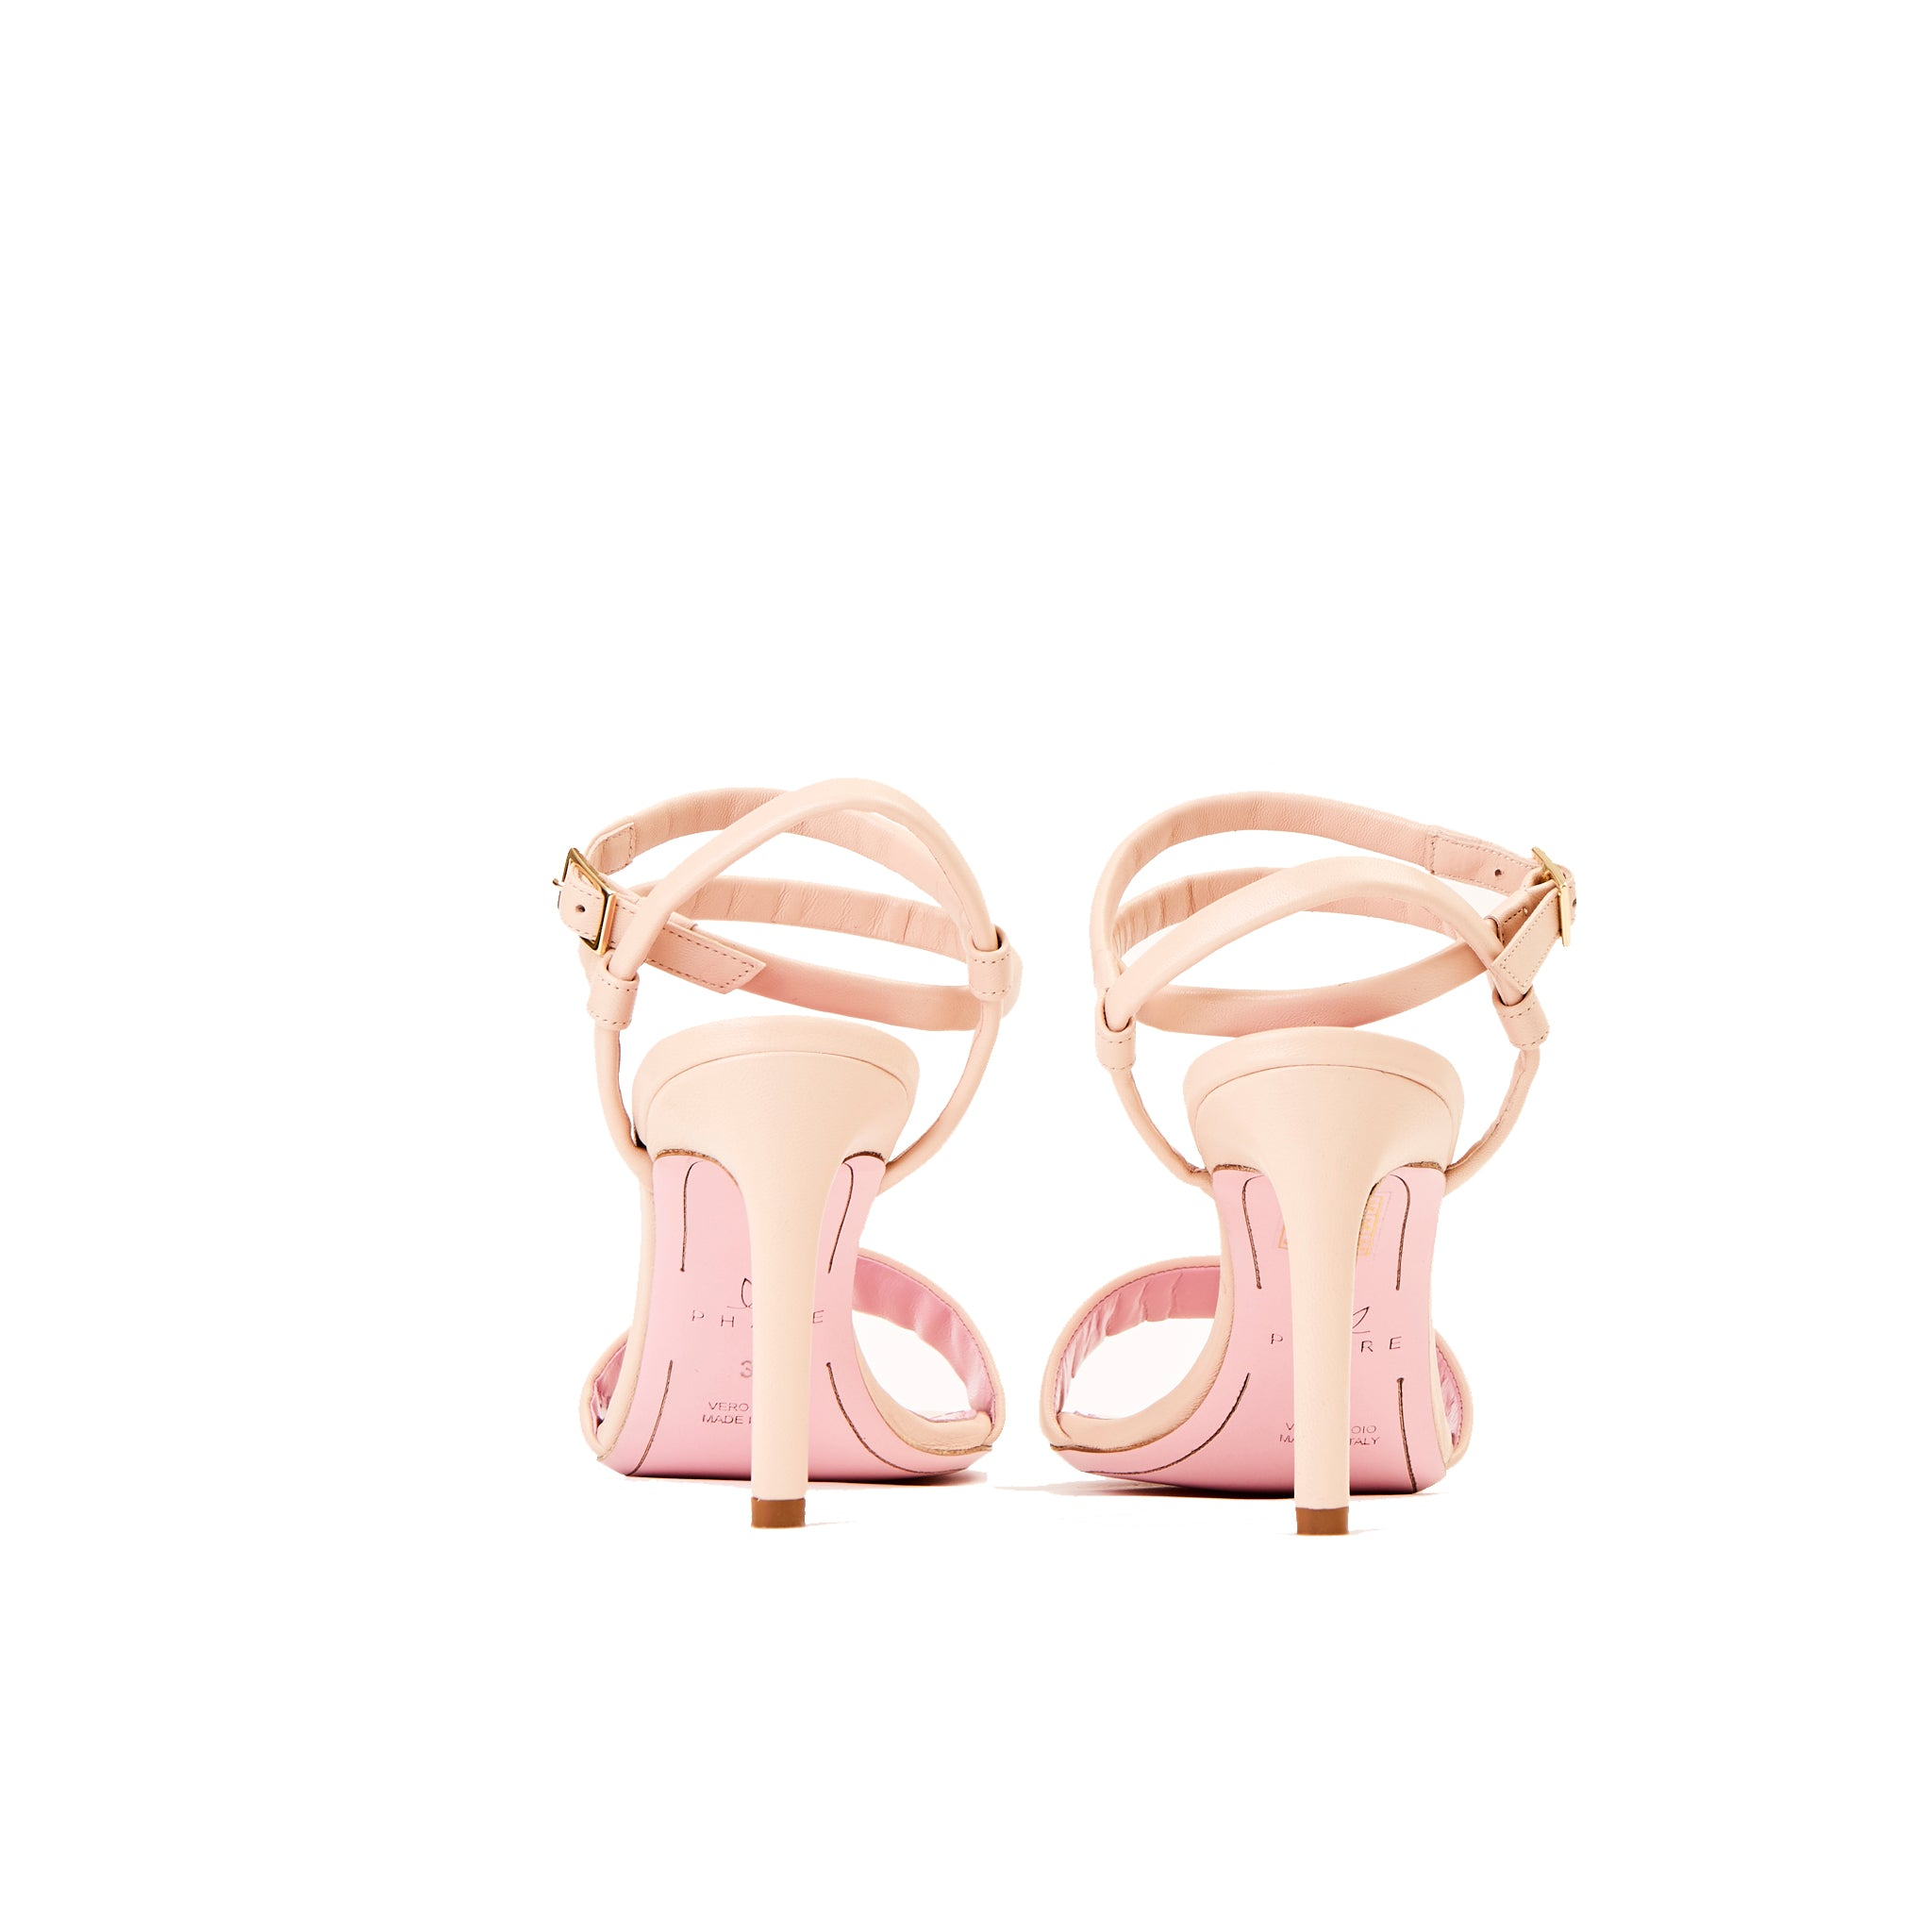 Phare Wrap ankle strap high heel sandal in pelle leather back view